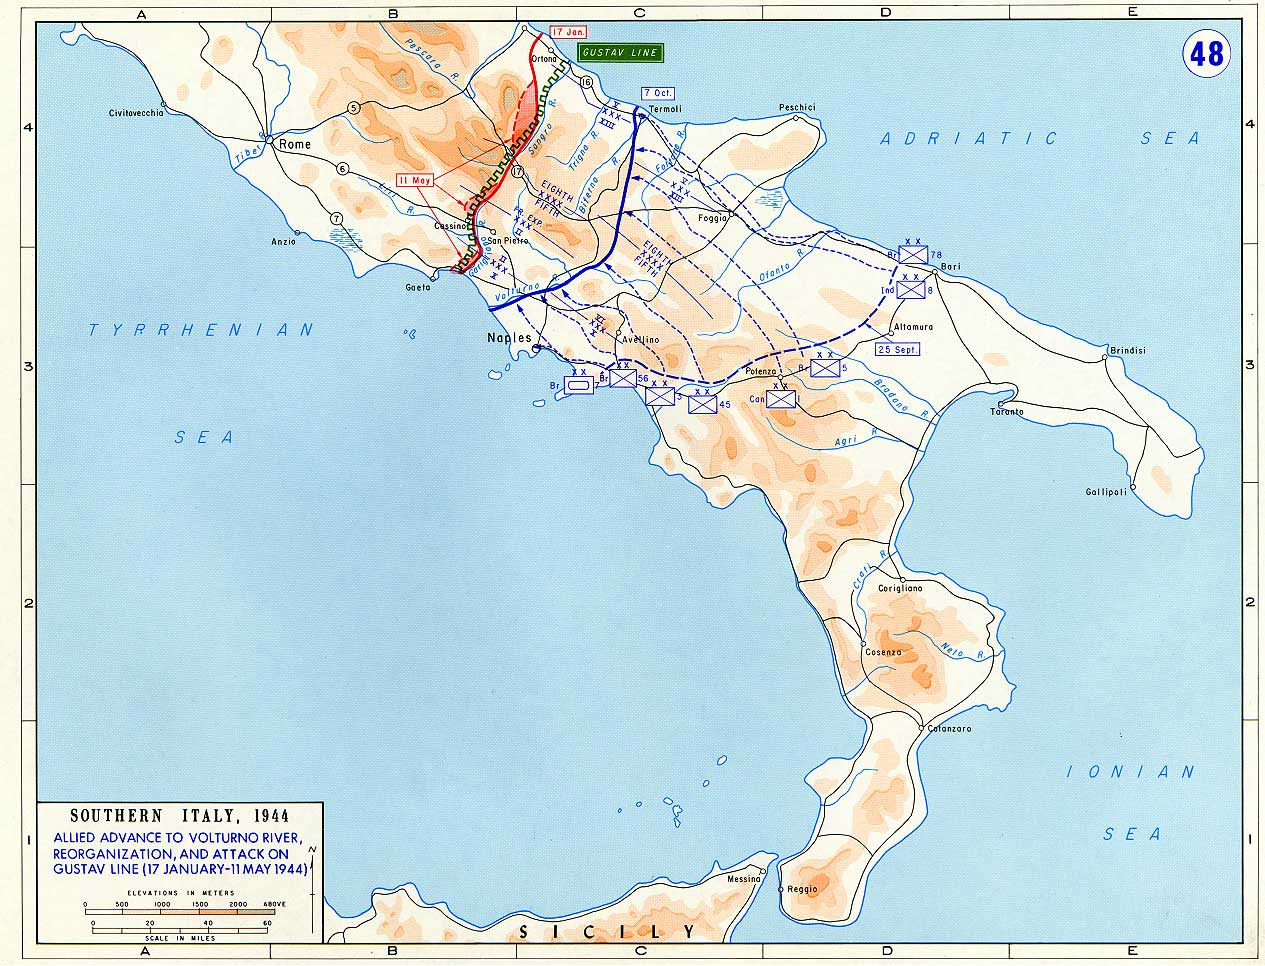 Map of Allied Advance to Volturno River (January-May 1944)